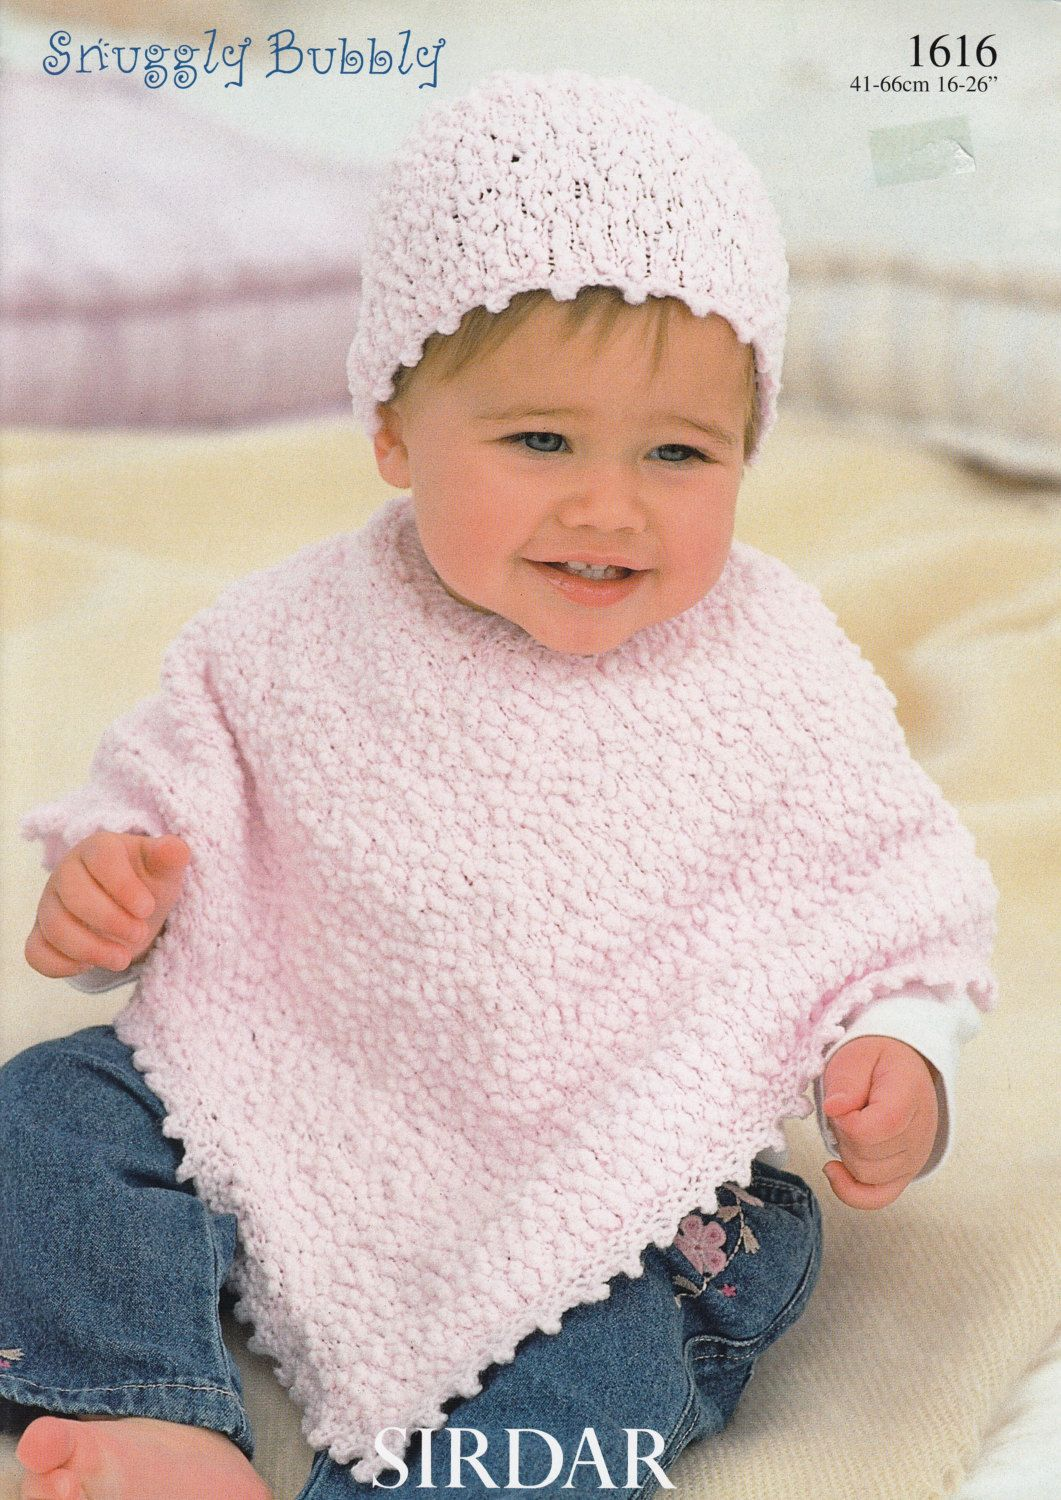 Child S Poncho Knitting Pattern : Baby poncho knitting pattern sirdar snuggly bubbly